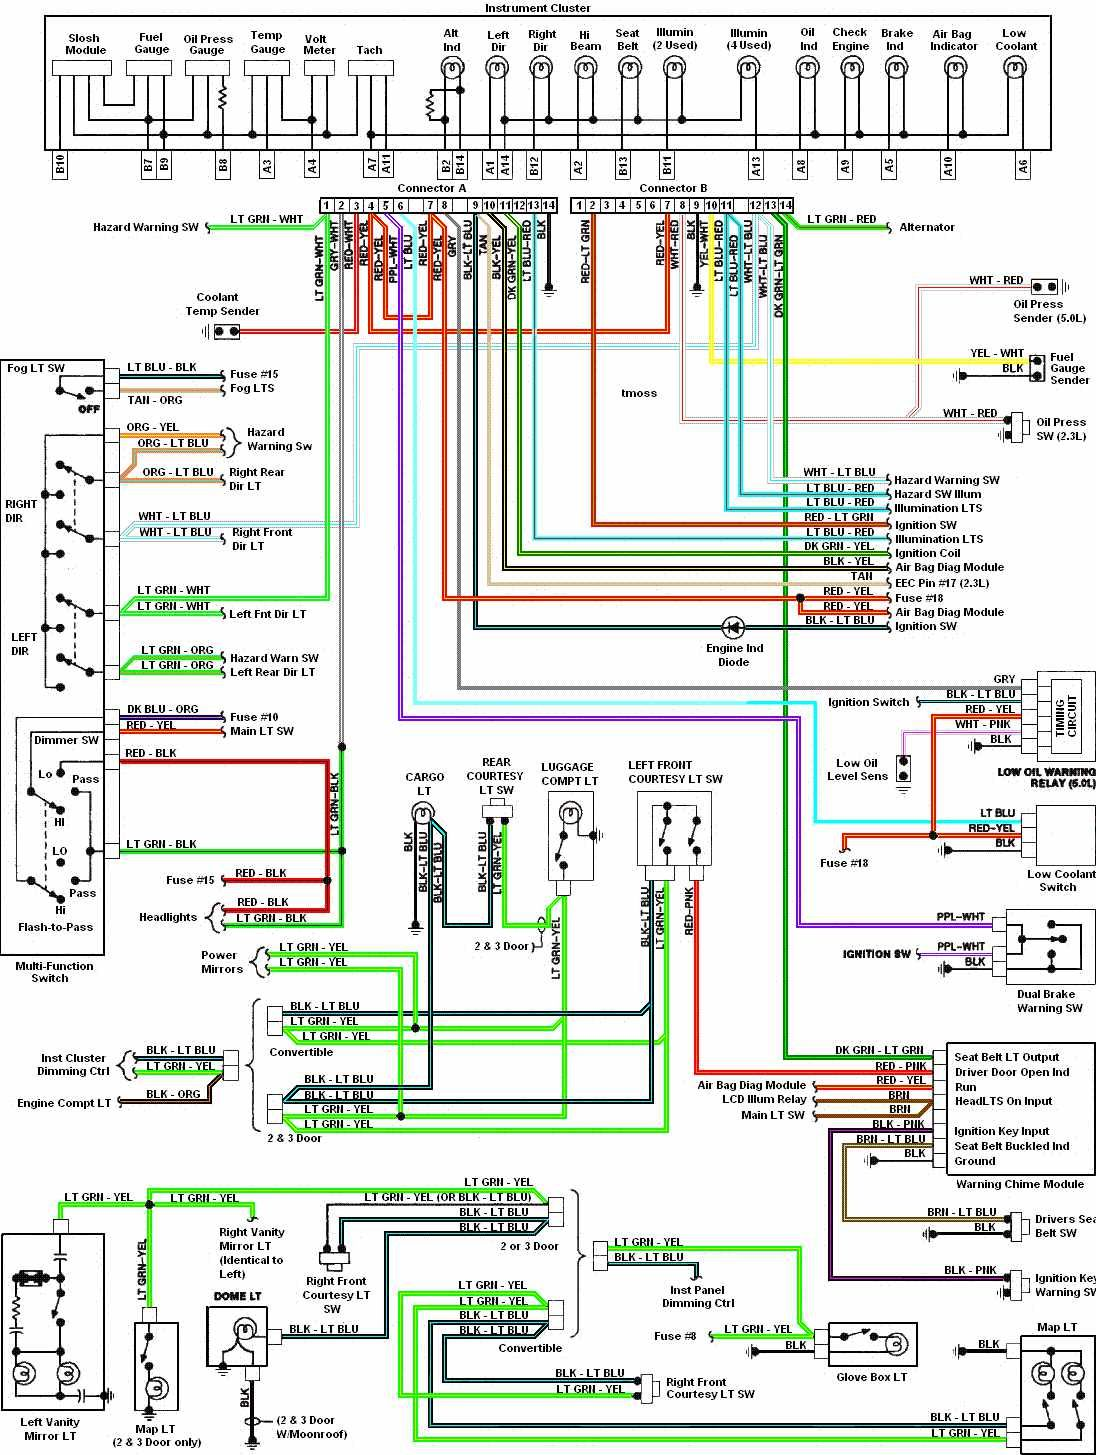 1969 mustang engine diagram wiring schematic wiring diagram tagsmustang wiring schematic wiring diagram log 1969 mustang [ 1096 x 1455 Pixel ]